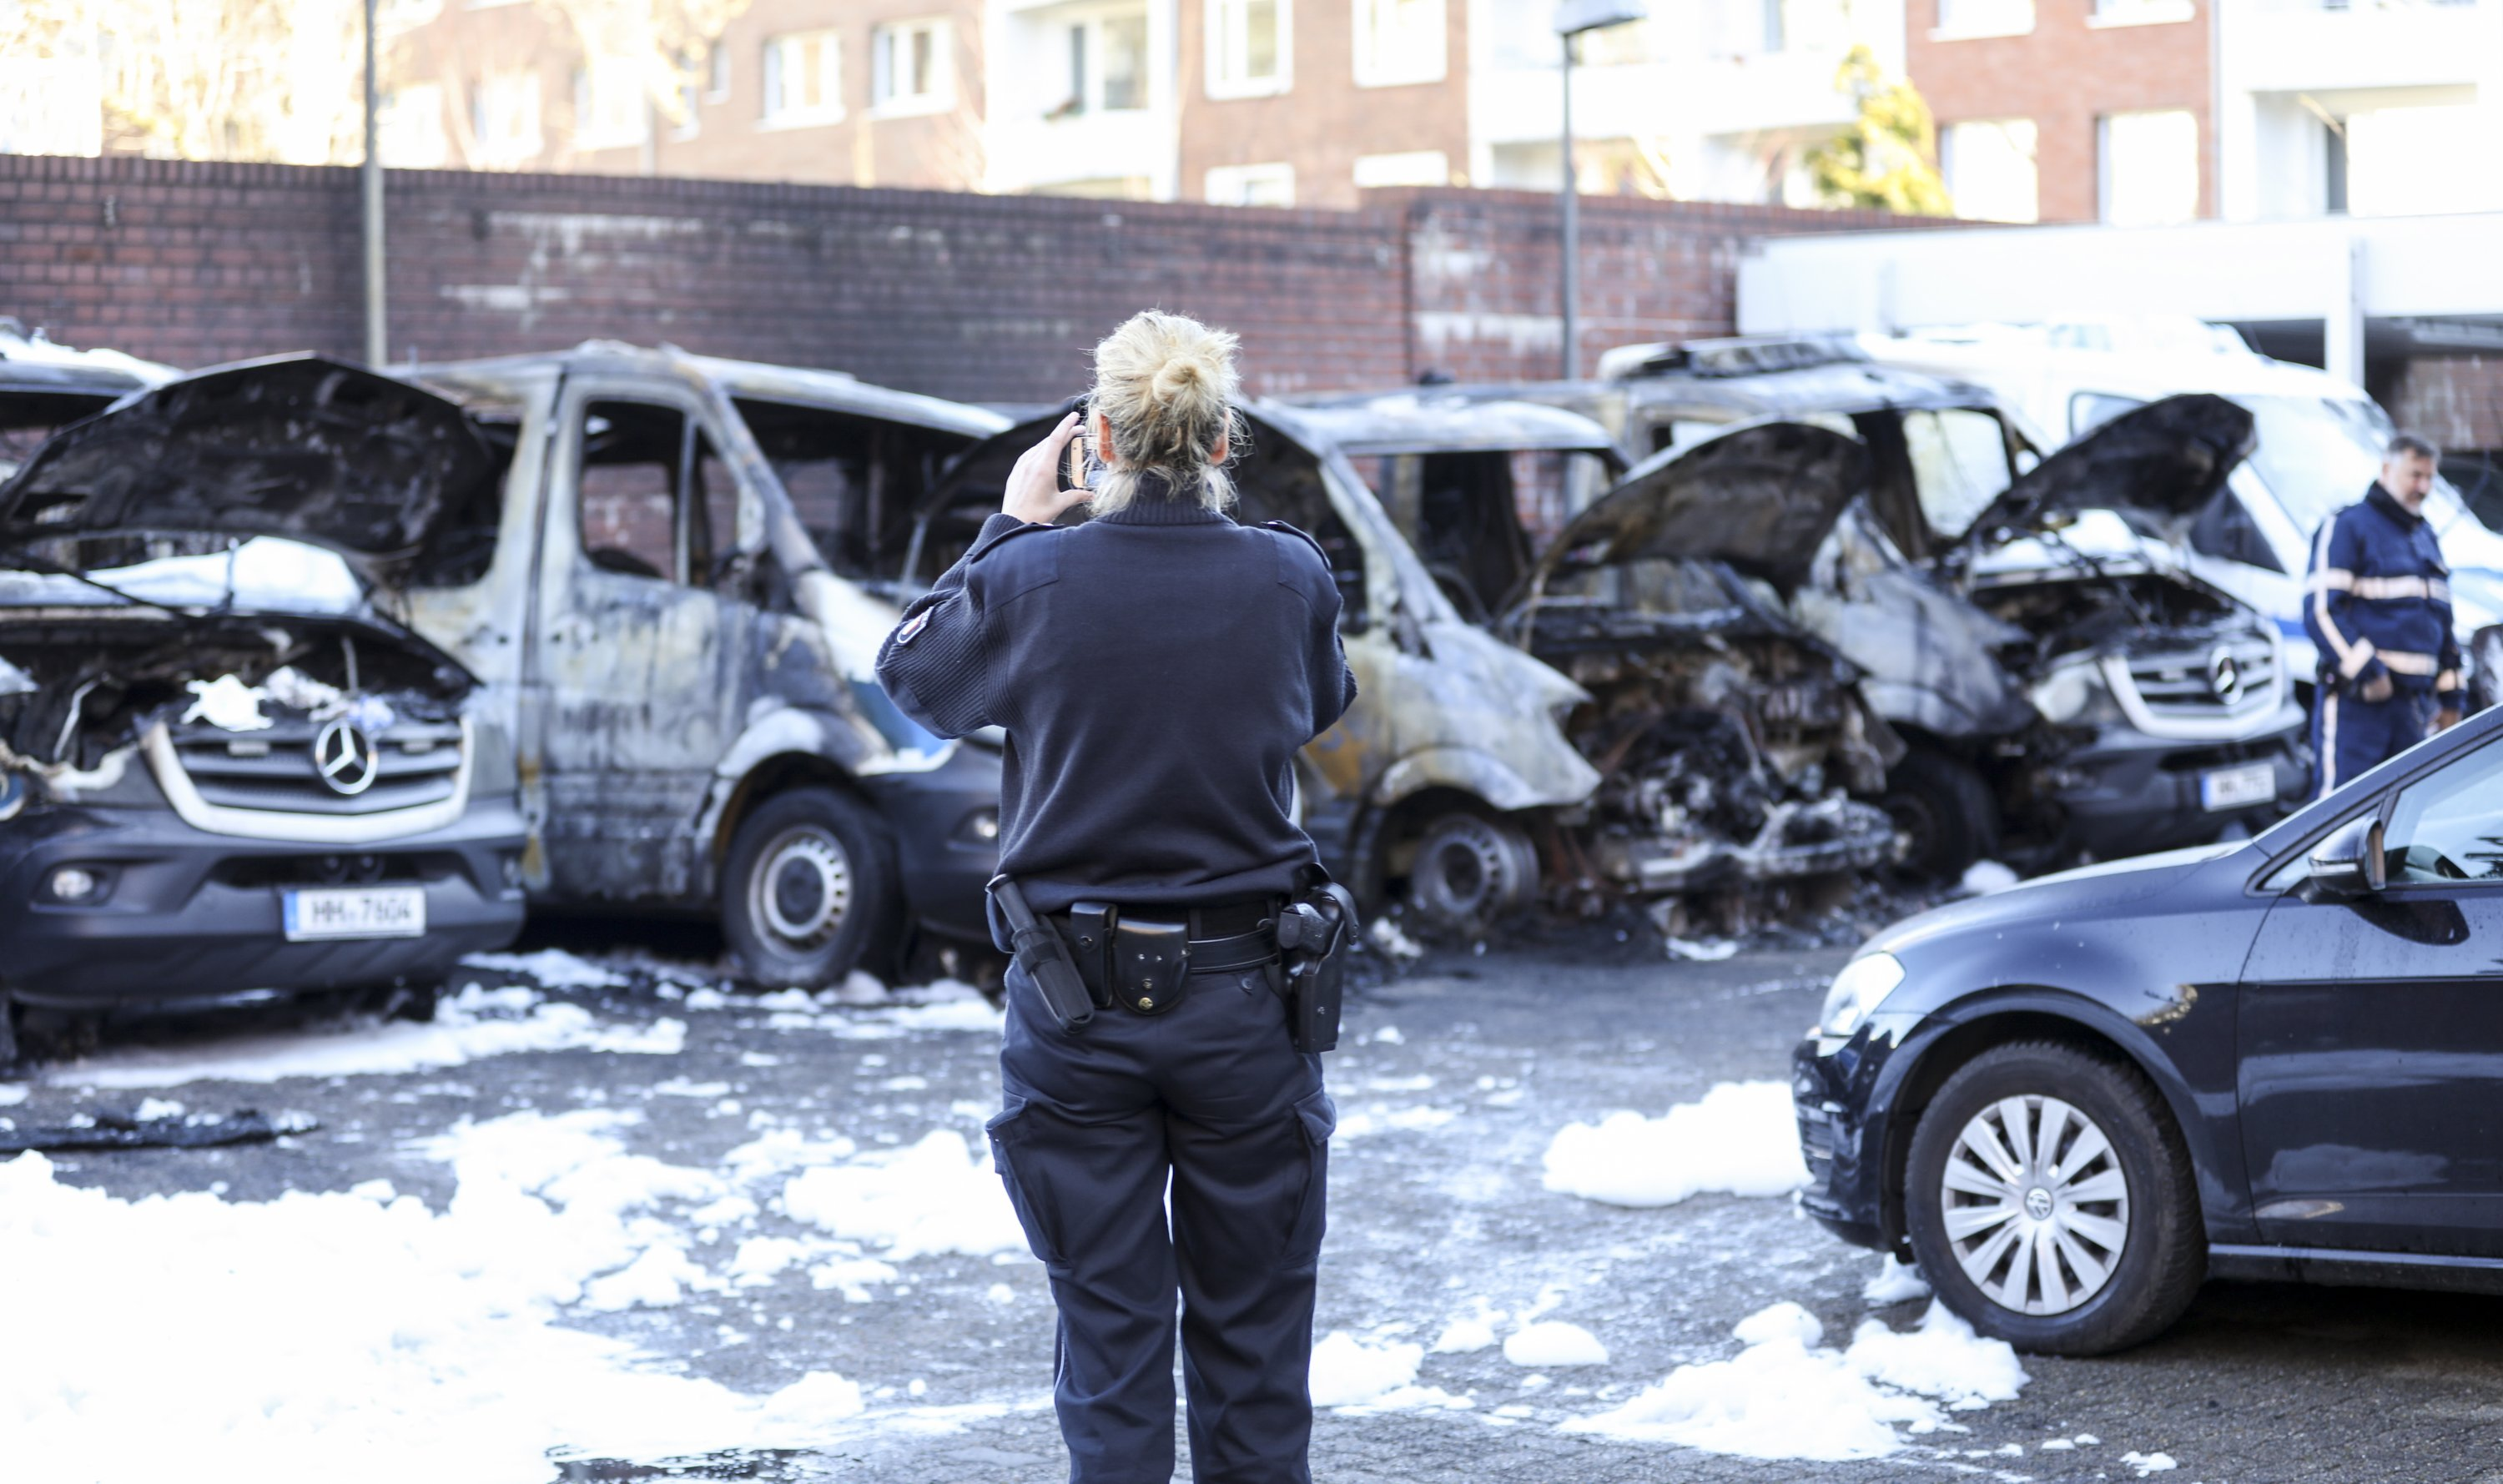 German police vehicles torched in Hamburg anti-G20 protest